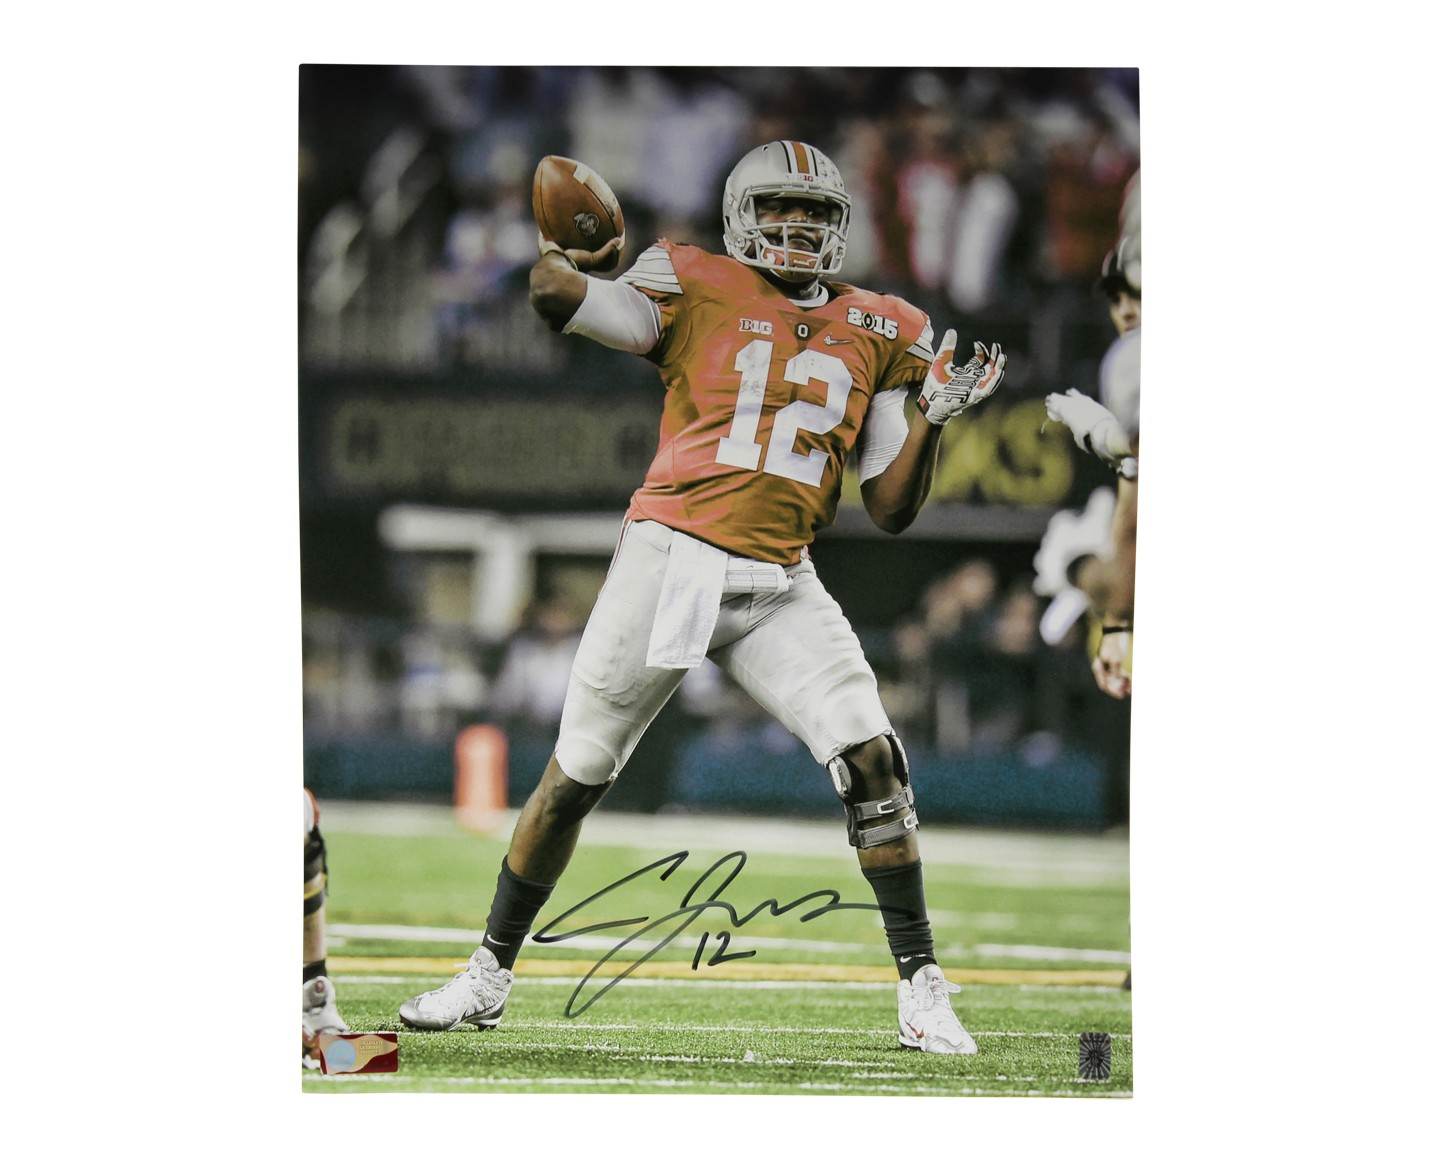 newest 9f12a b5cac Cardale Jones Autographed Signed 16x20 Photo Ohio State ...